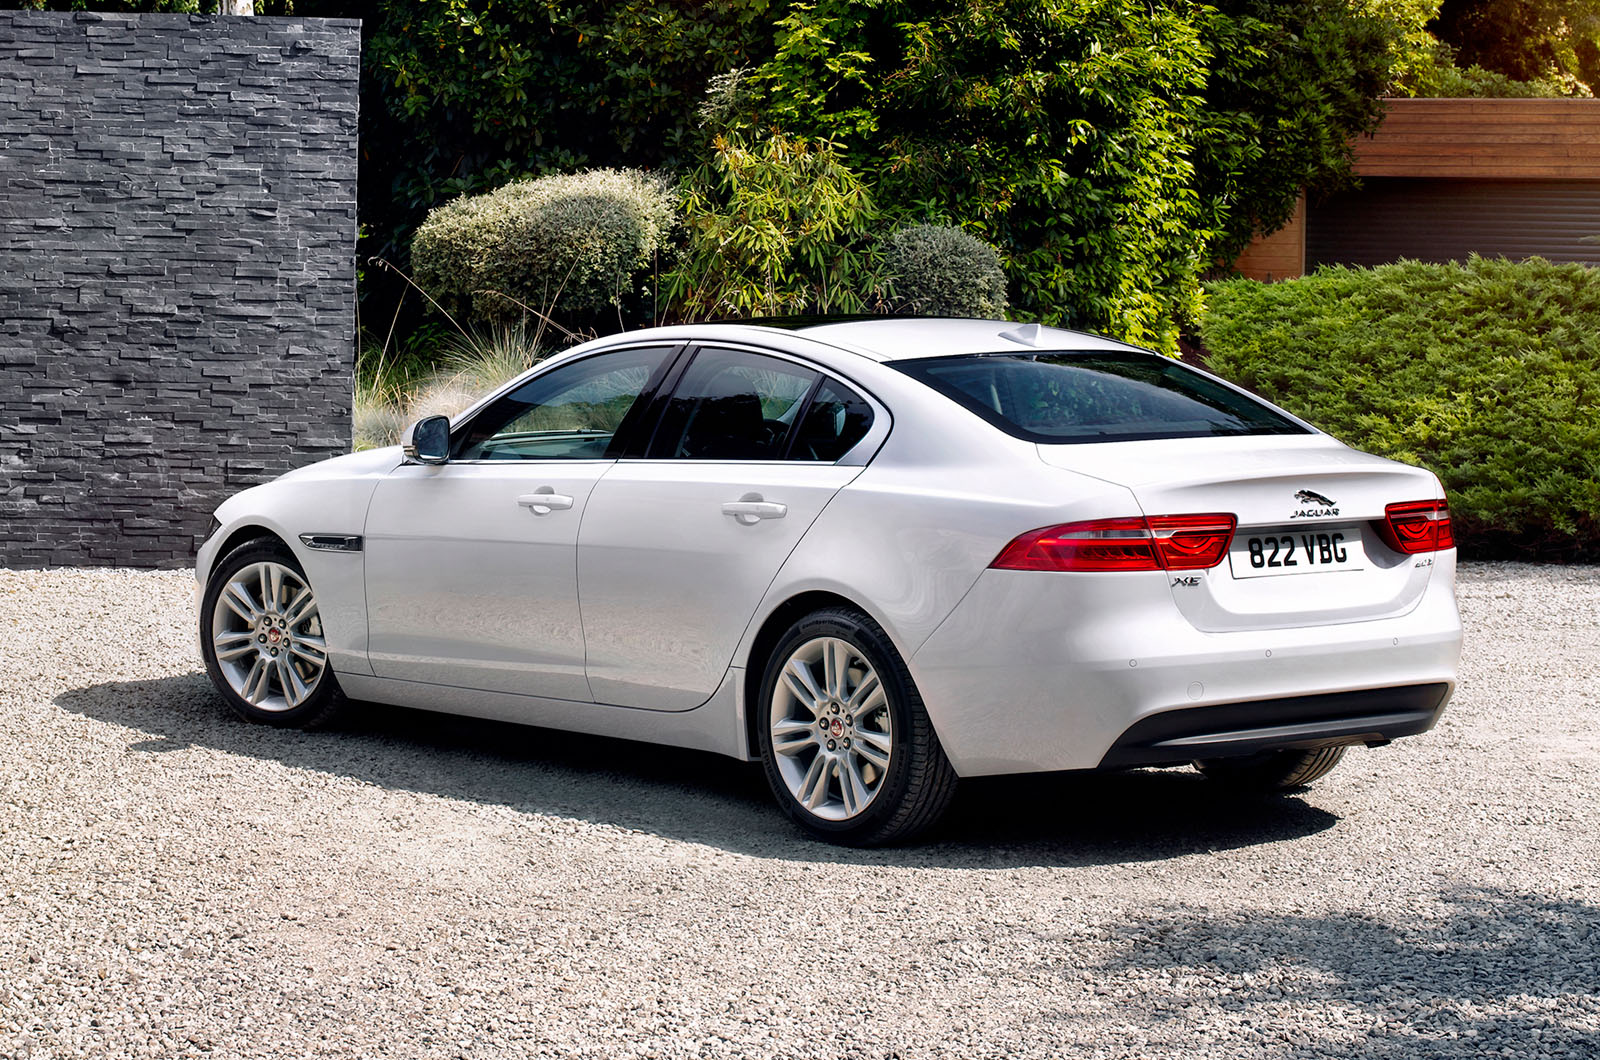 new jaguar xe to cost from 26 995 autocar. Black Bedroom Furniture Sets. Home Design Ideas